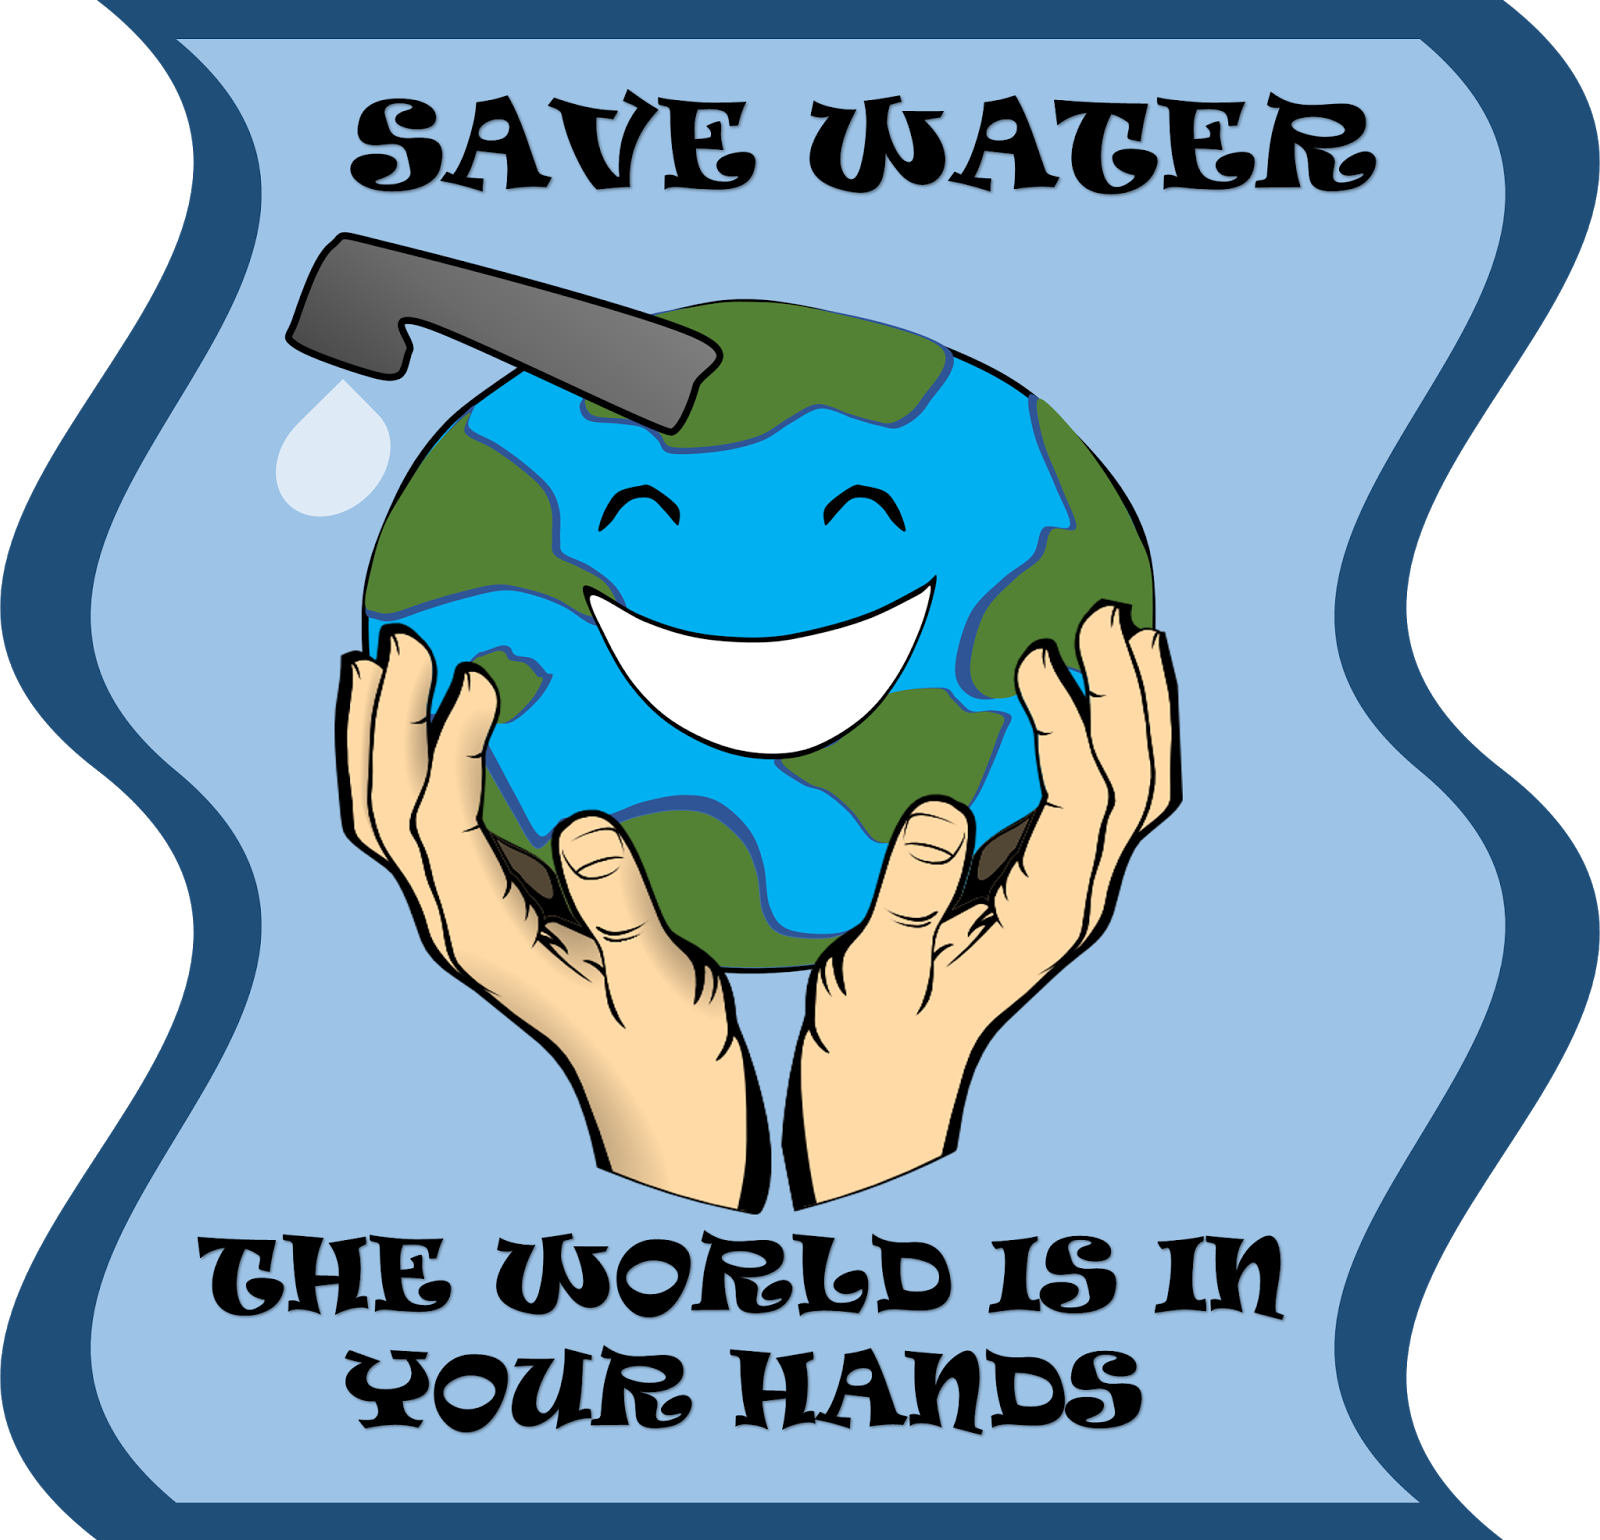 image free stock Save water free on. Poster clipart.